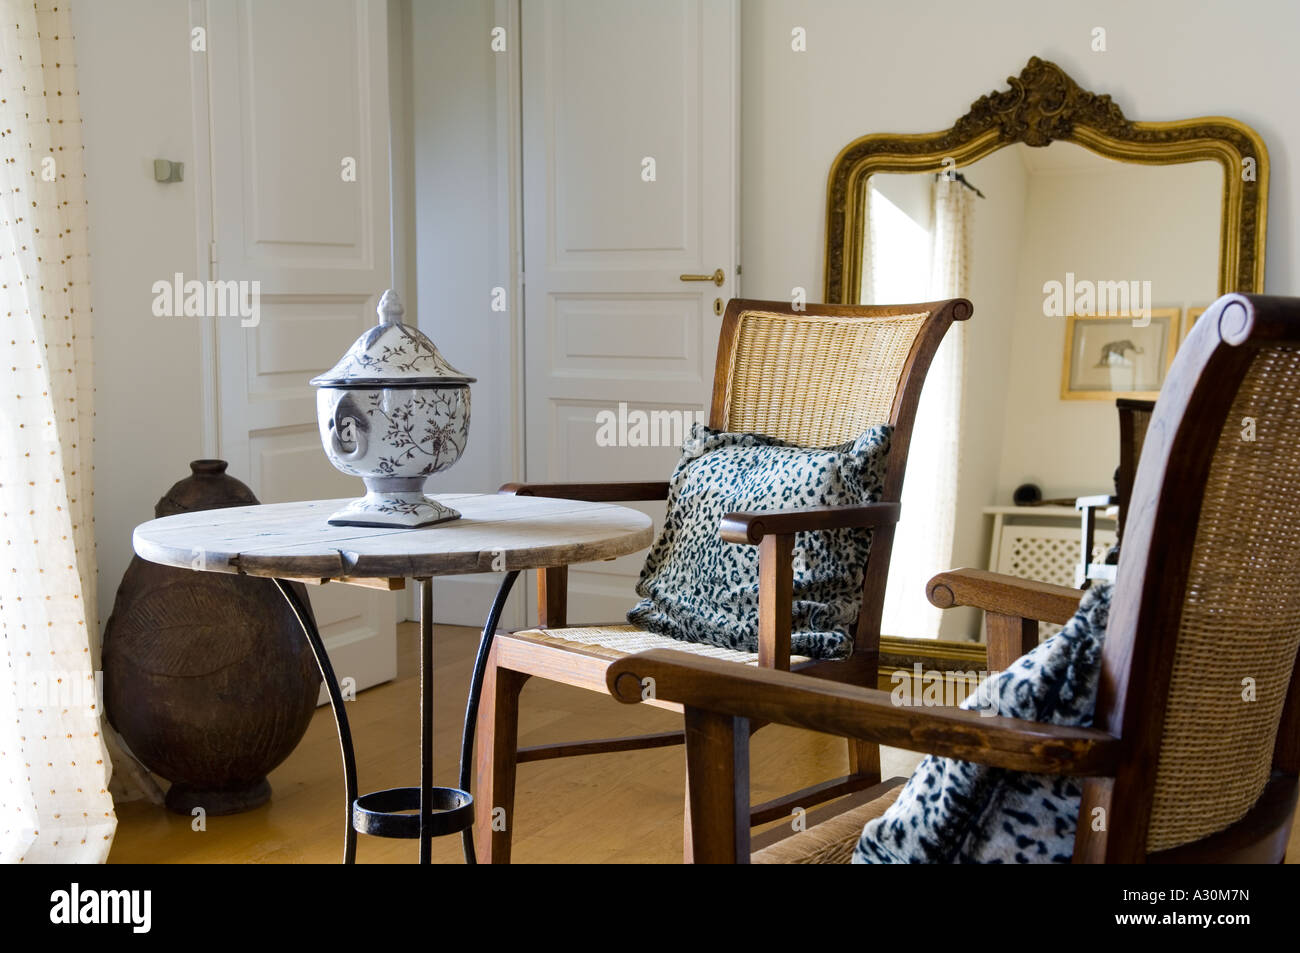 Two wicker chairs at a side table with a gilt framed mirror - Stock Image